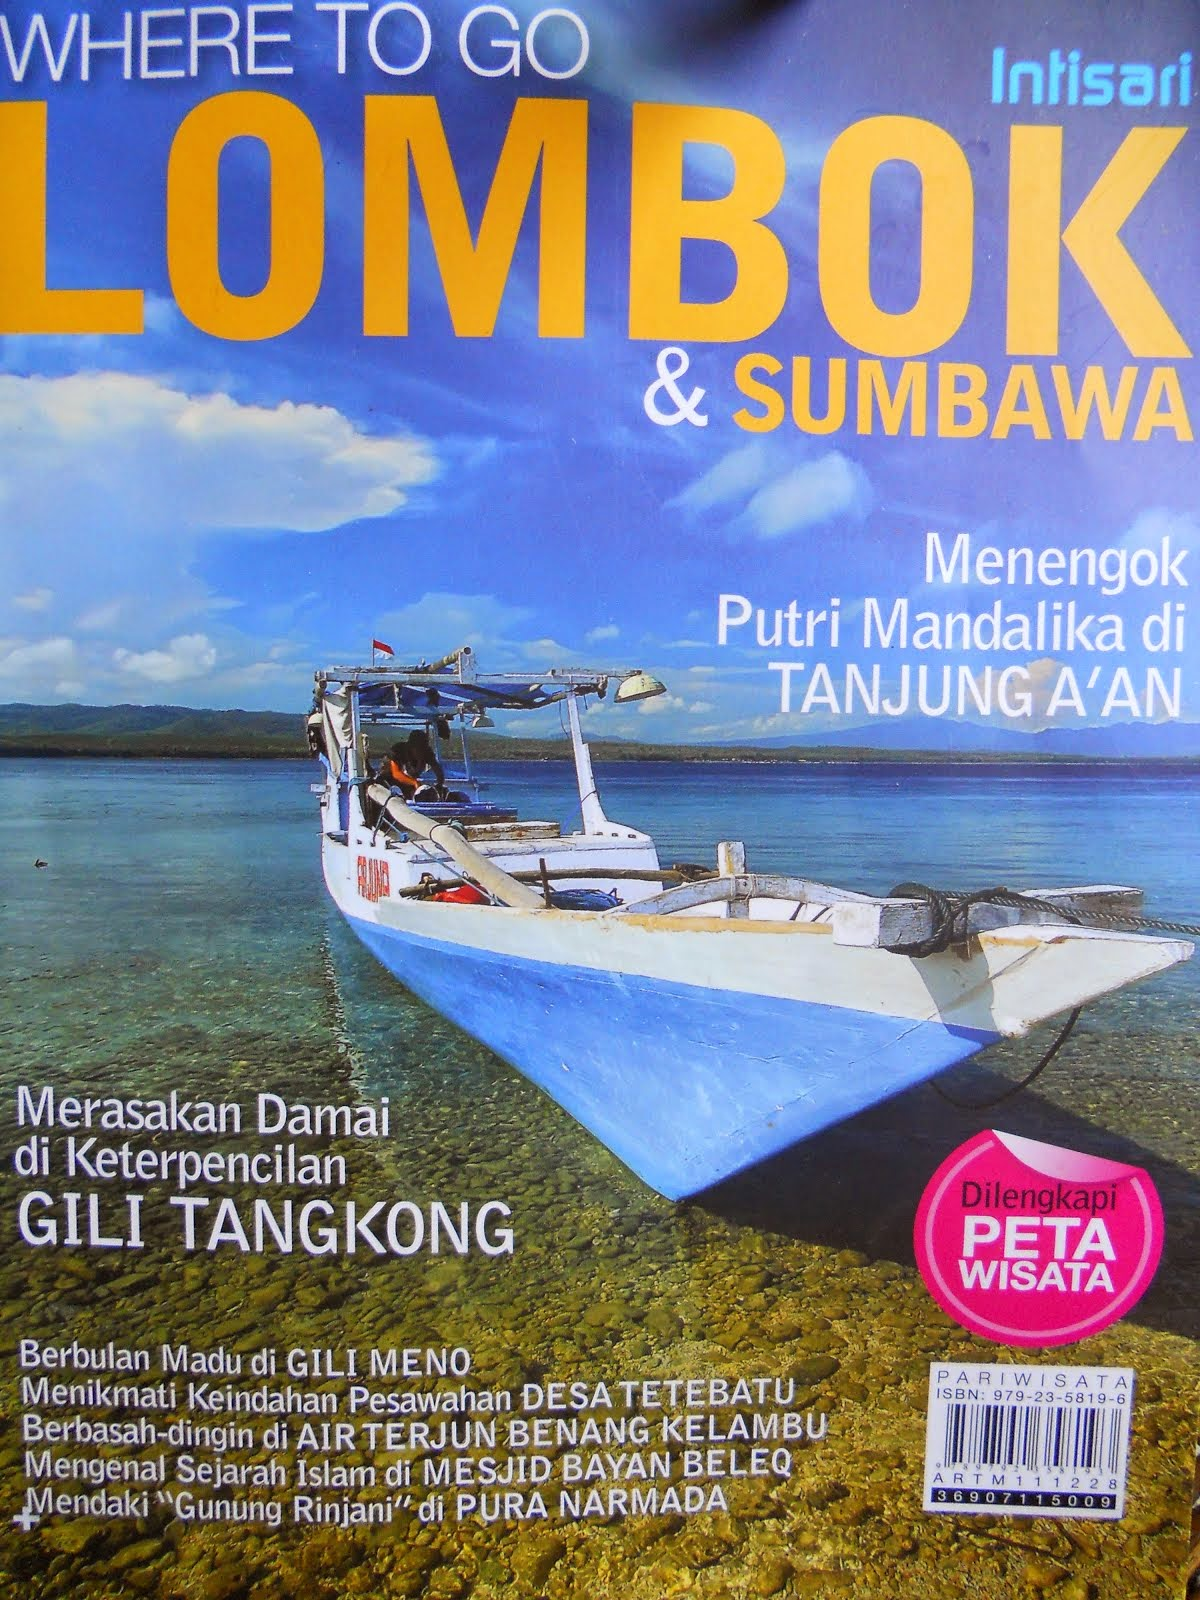 WHERE TO GO LOMBOK & SUMBAWA